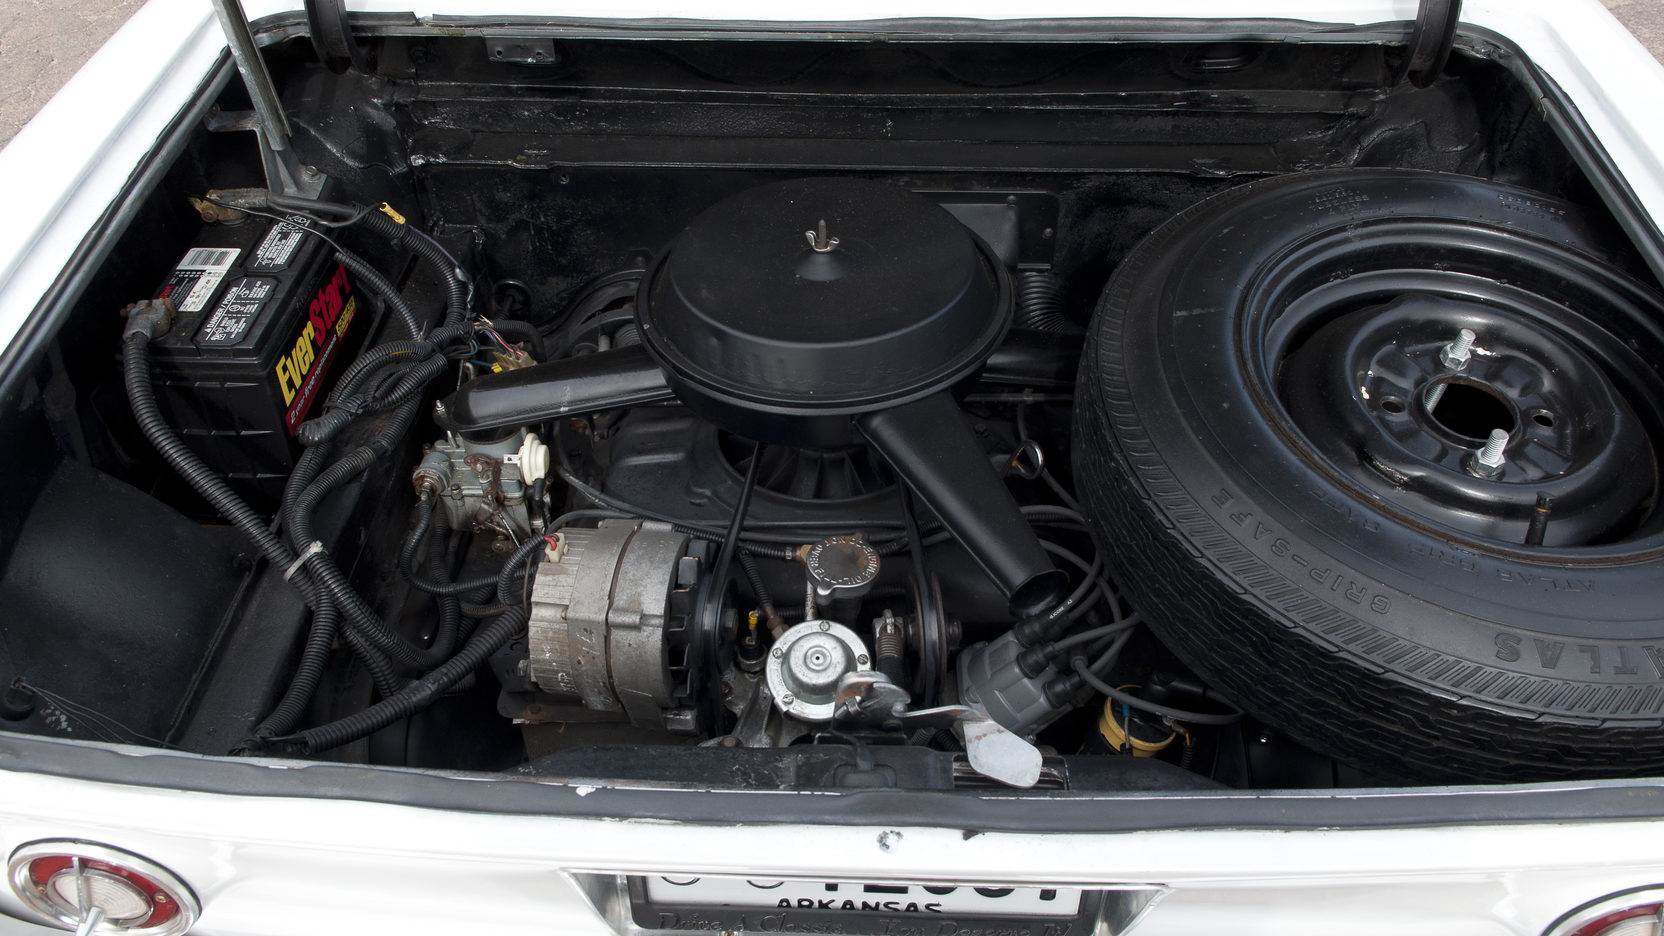 Chevrolet Corvair engine rear